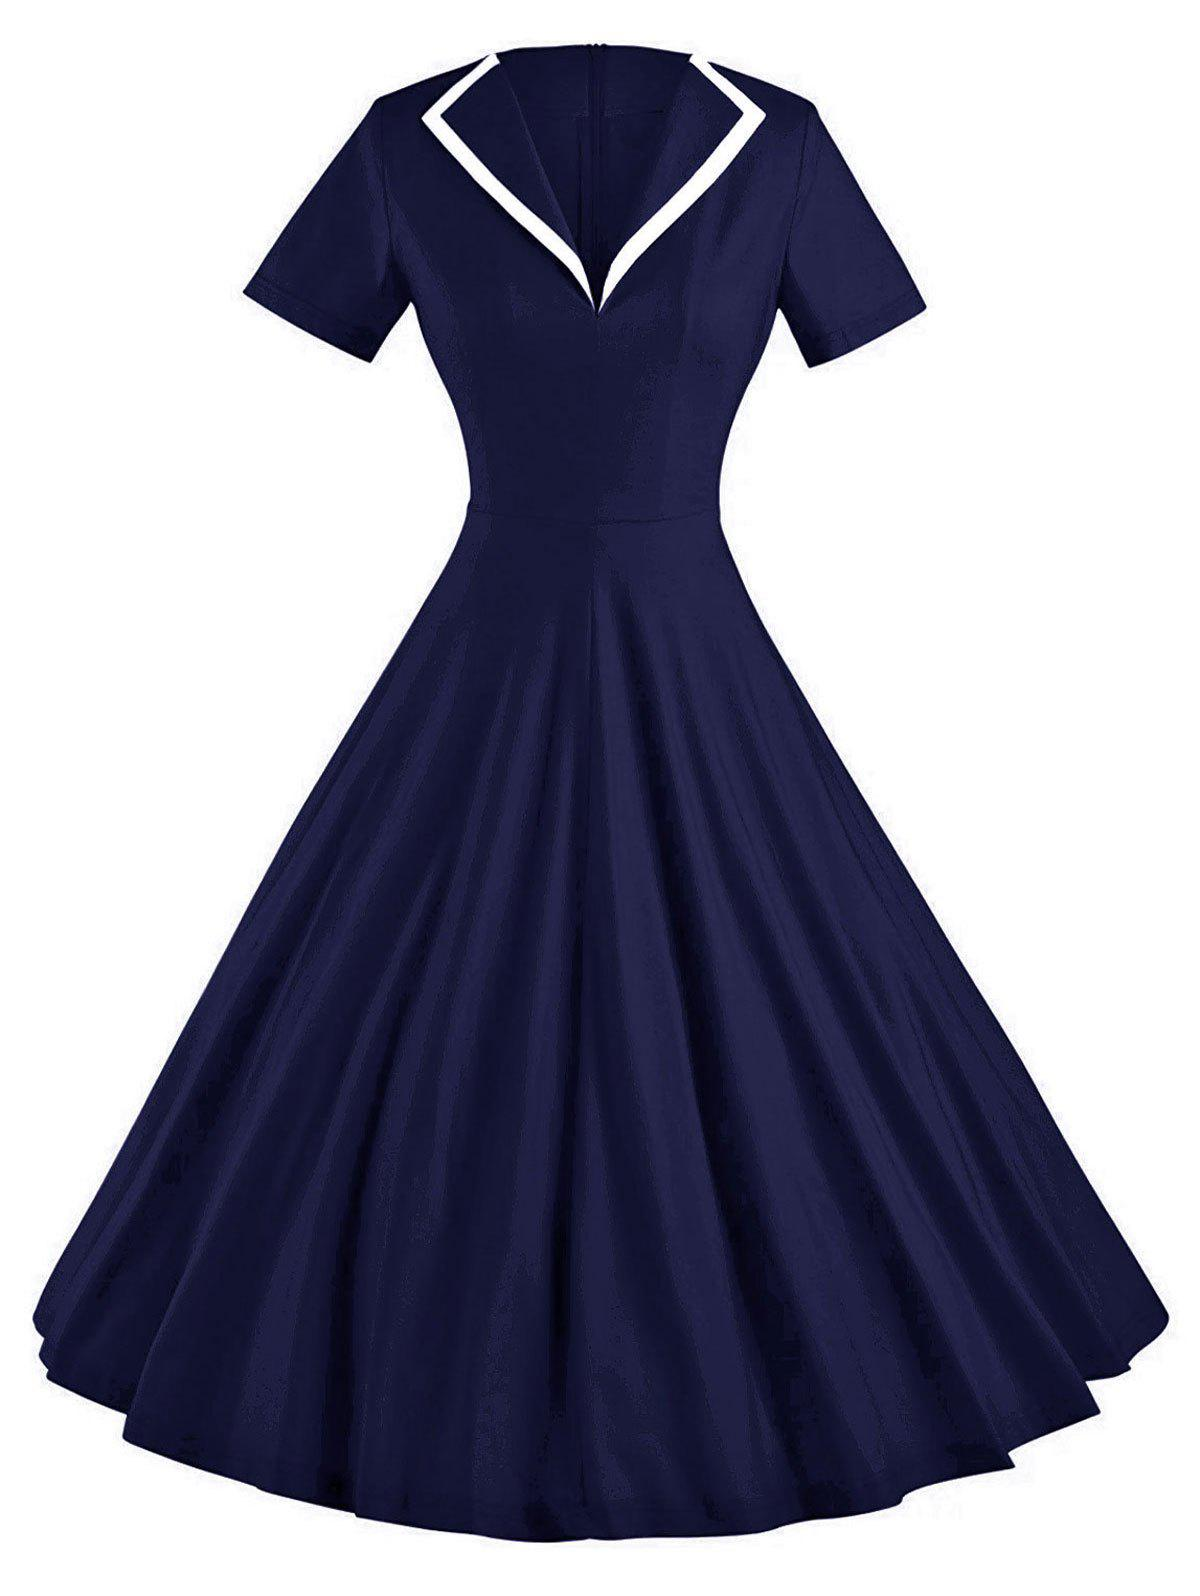 Vintage Skate Party Pin Up DressWOMEN<br><br>Size: L; Color: DEEP BLUE; Style: Vintage; Material: Cotton,Polyester,Spandex; Silhouette: A-Line; Dresses Length: Knee-Length; Neckline: Turn-down Collar; Sleeve Length: Short Sleeves; Pattern Type: Solid Color; With Belt: No; Season: Fall,Spring,Summer; Weight: 0.4000kg; Package Contents: 1 x Dress;